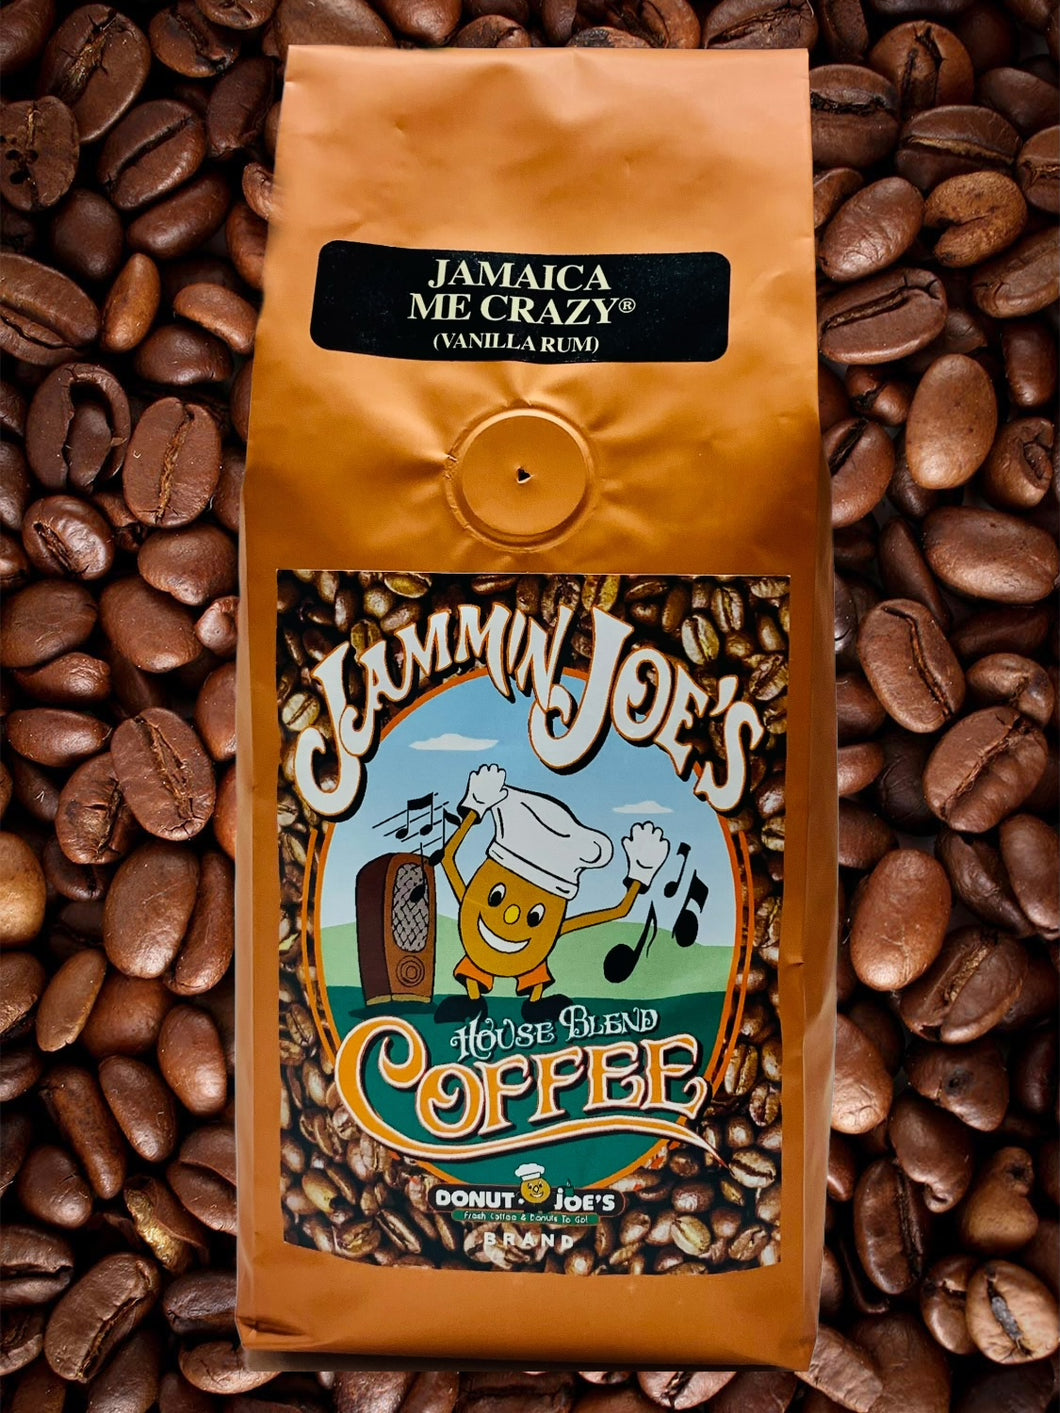 1 Bag Donut Joe's®️ Jamaica Me Crazy Coffee